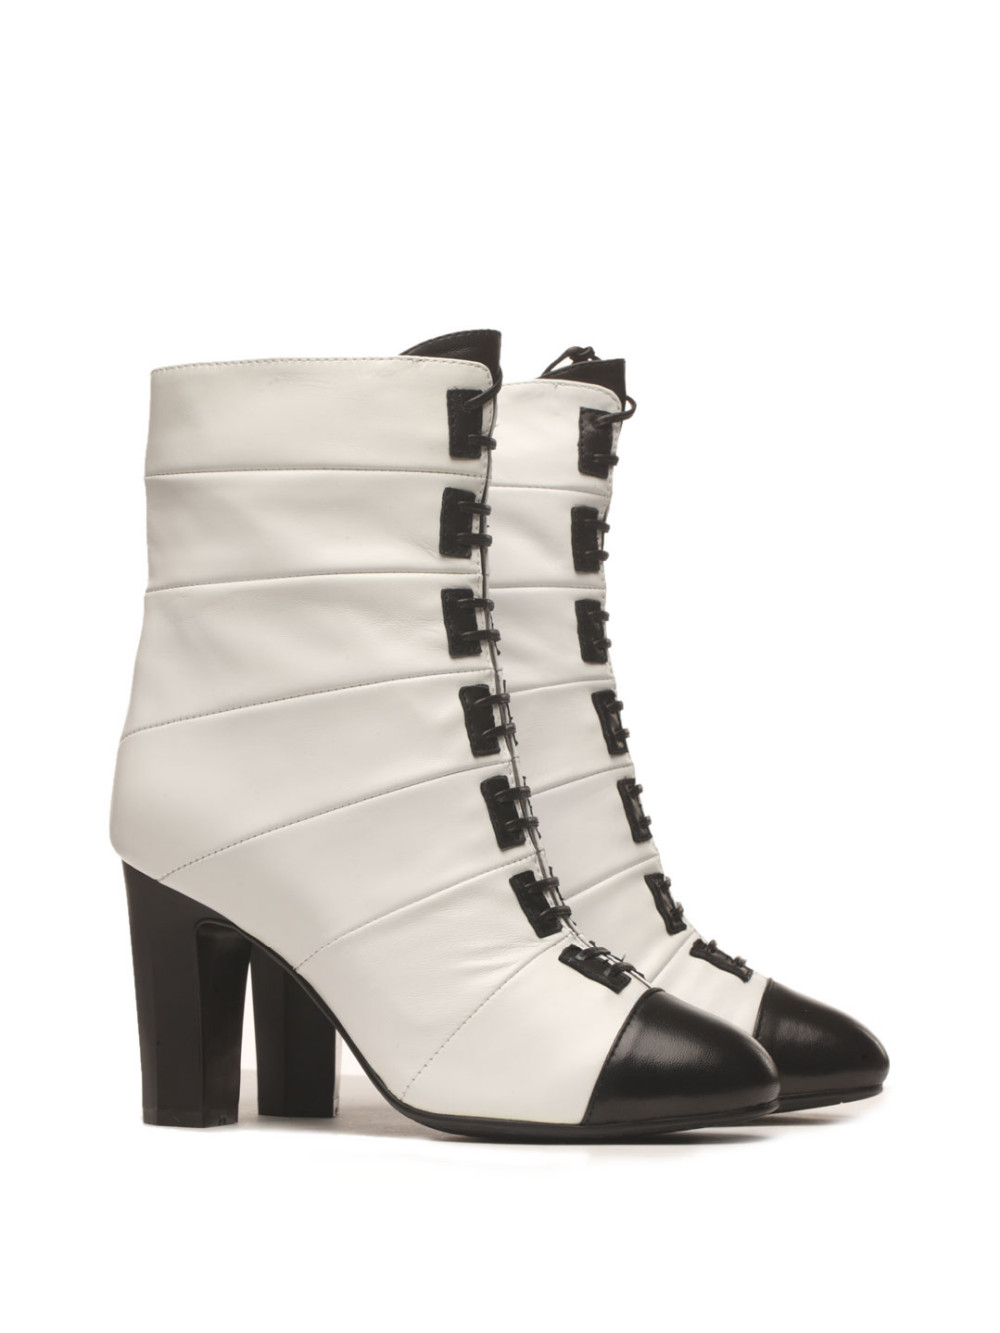 BASIC EDITIONS New Fashion Sexy Womens Ankle Boots High Heels Women Winter Autumn Boots Ladies Shoes F1329-60